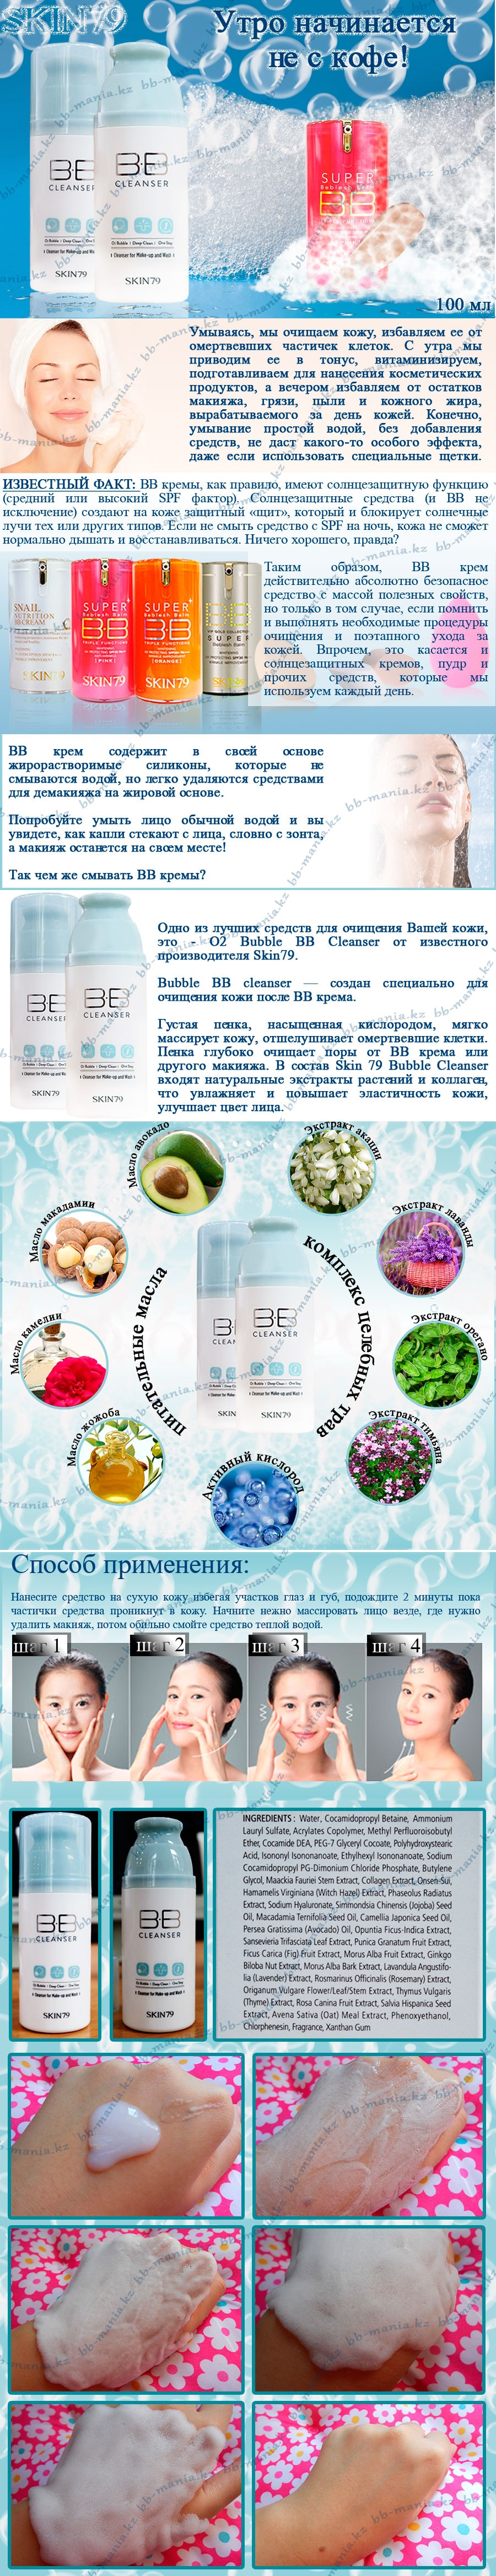 O2-Bubble-BB-Cleanser-[Skin79]-min